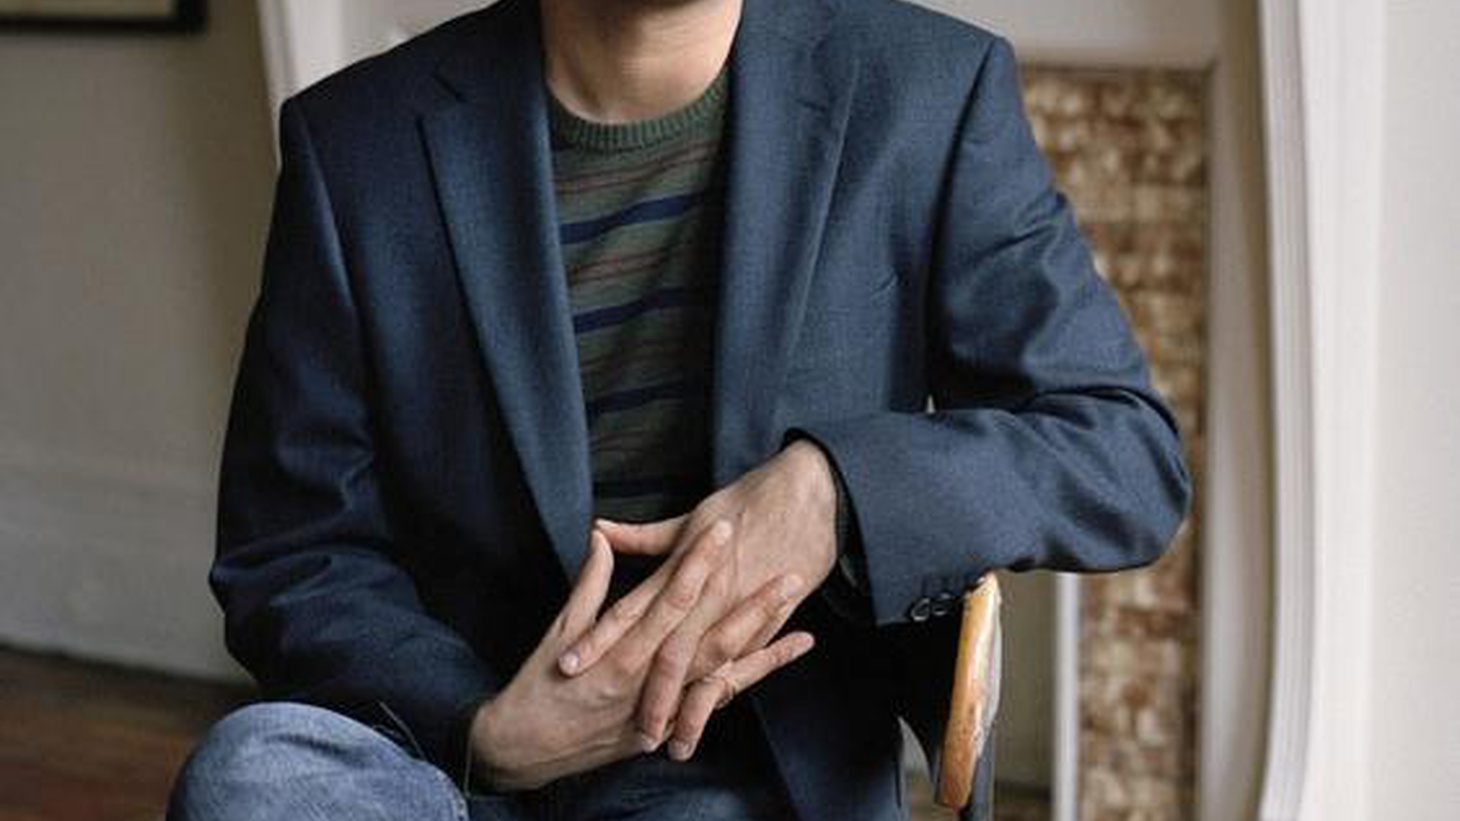 Ayad Akhtar on coming-of-age as a Muslim in Milwaukee. We discuss the nature of cultural understanding and misunderstanding, sexual and spiritual awakening.